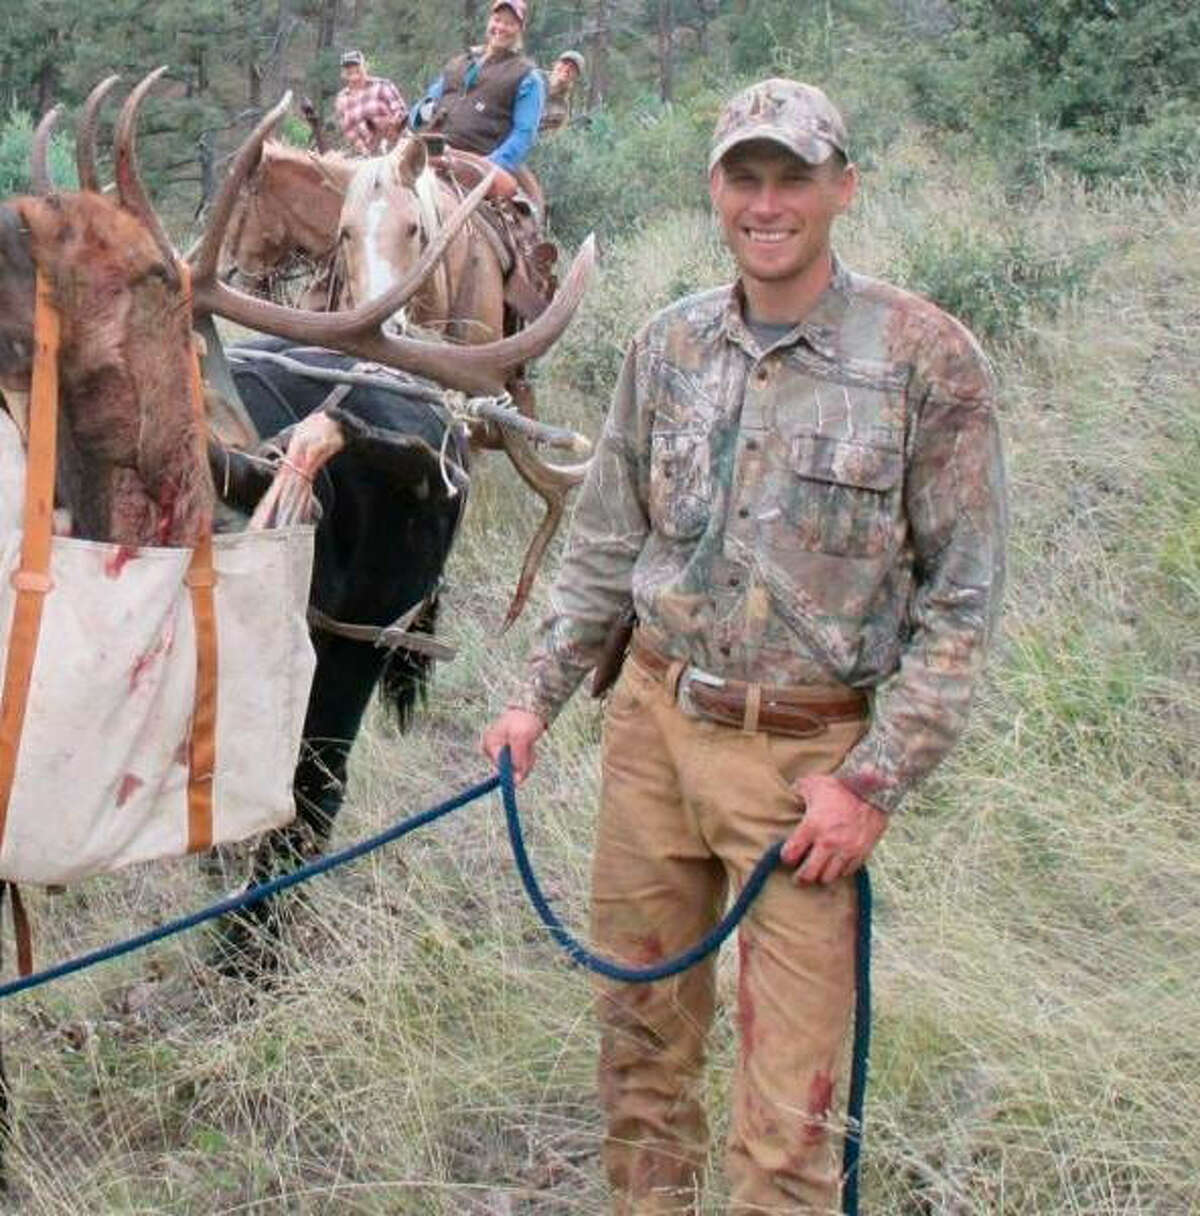 The incident Hunting guide Walker Daugtery and two other men were shot earlier this month while on a trip near Candelaria in Presidio County in West Texas. They told the story of an attack by immigrants trying to steal their RV. The local sheriff debunked the story, saying there's evidence that the hunters shot each other.